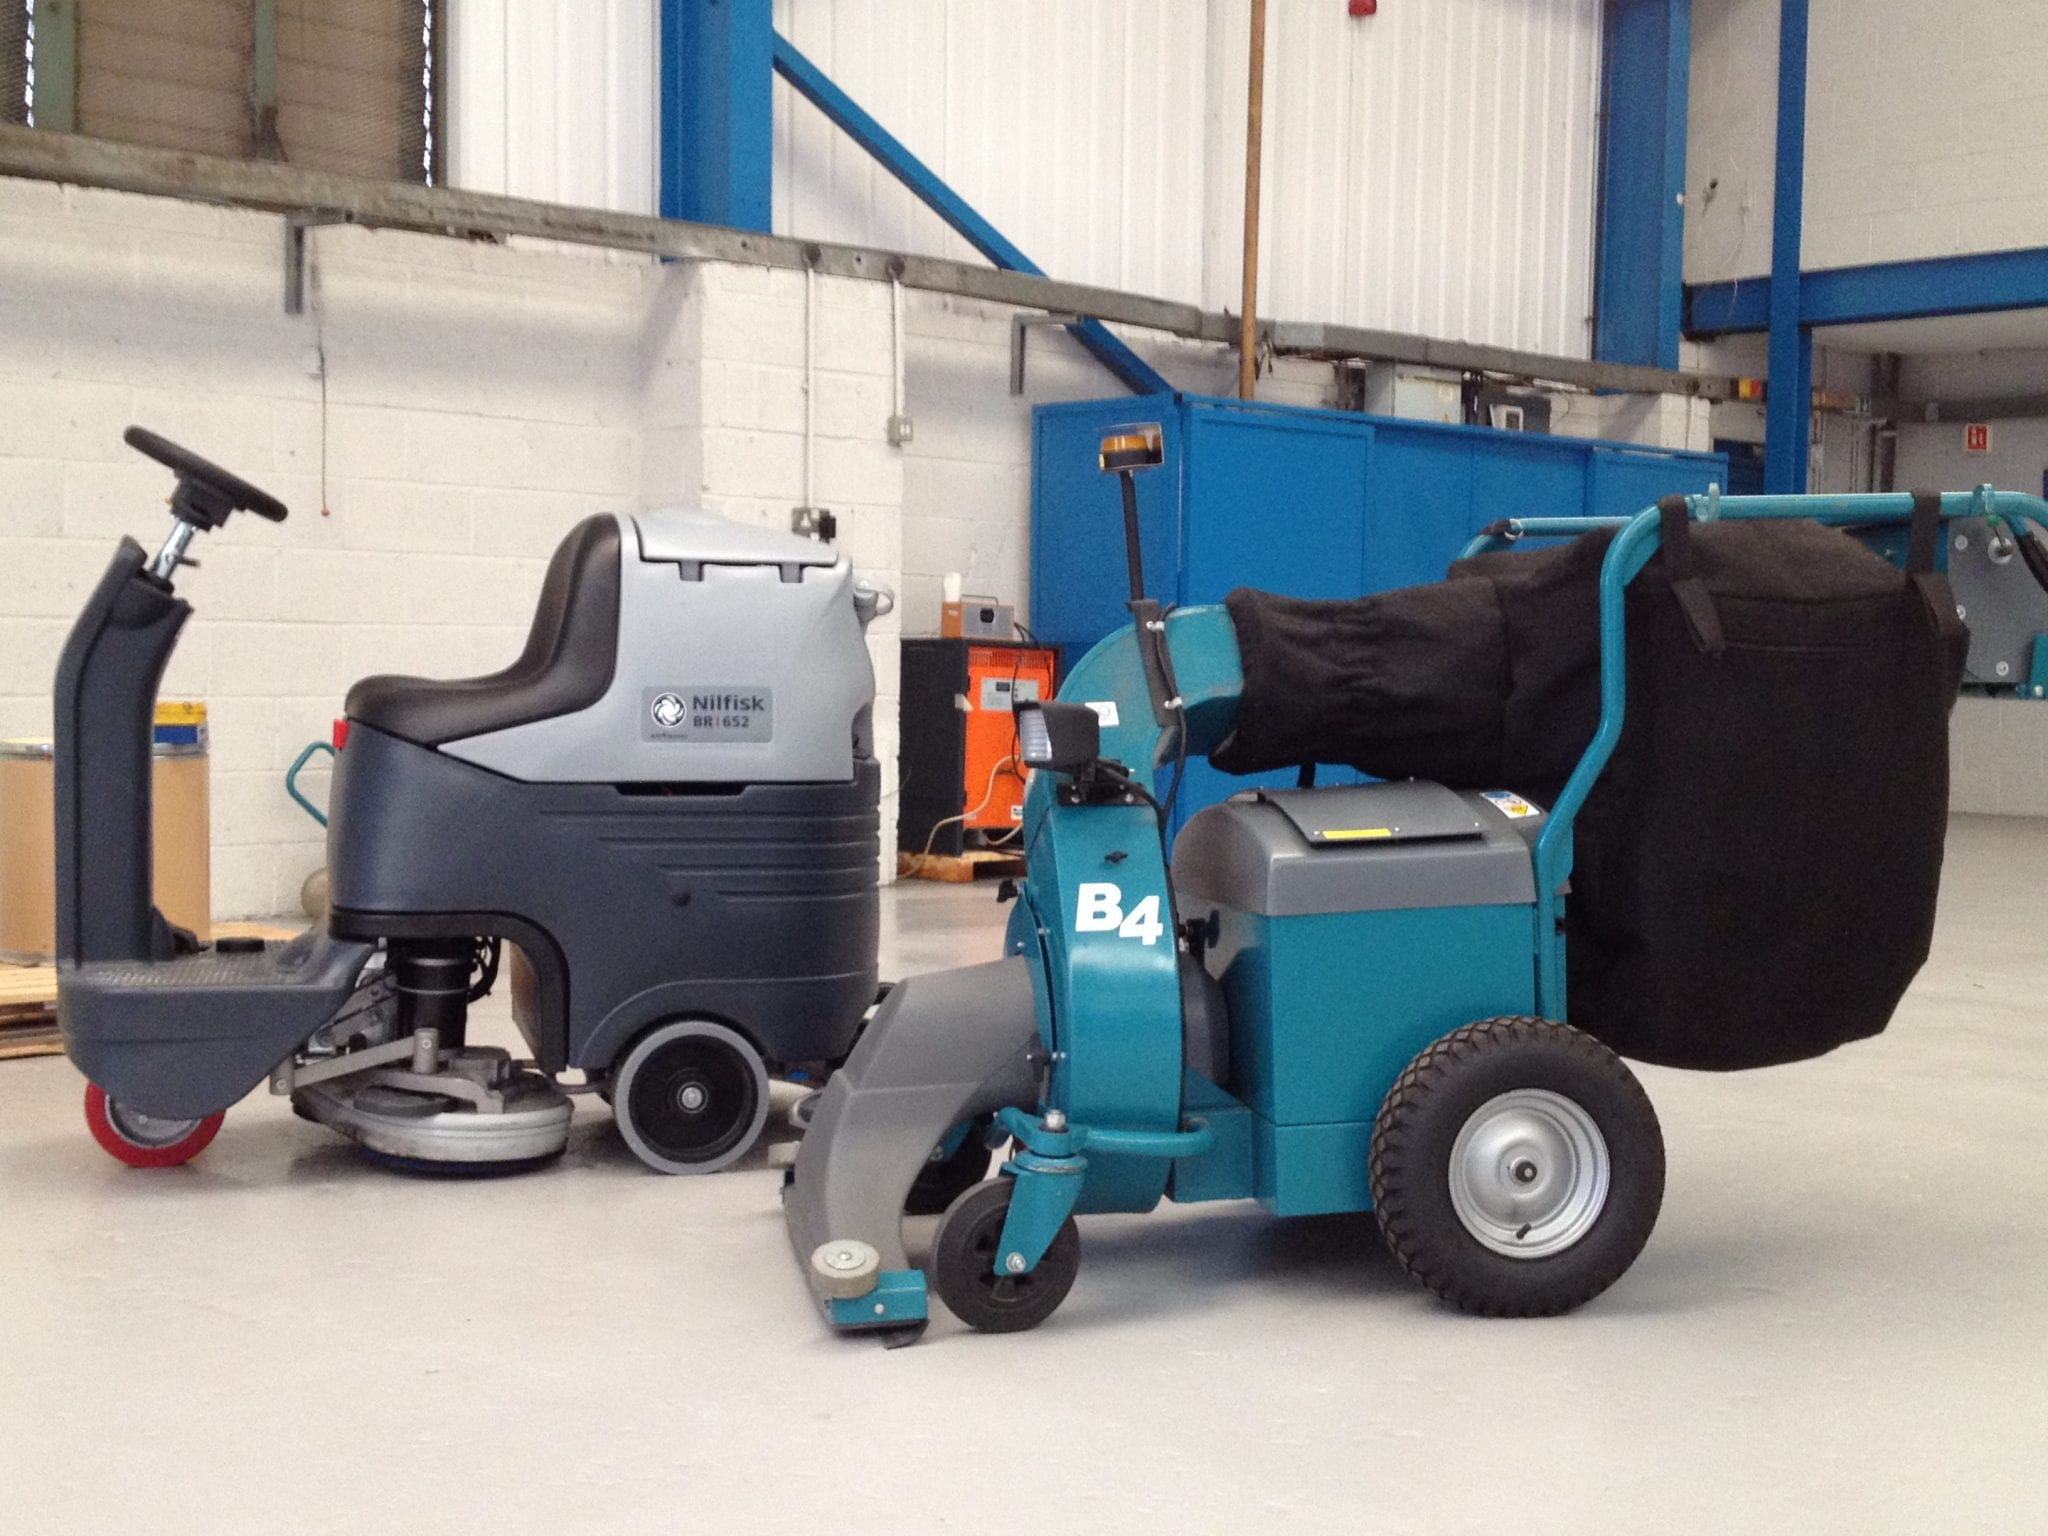 Tennant floor cleaning machines for sale